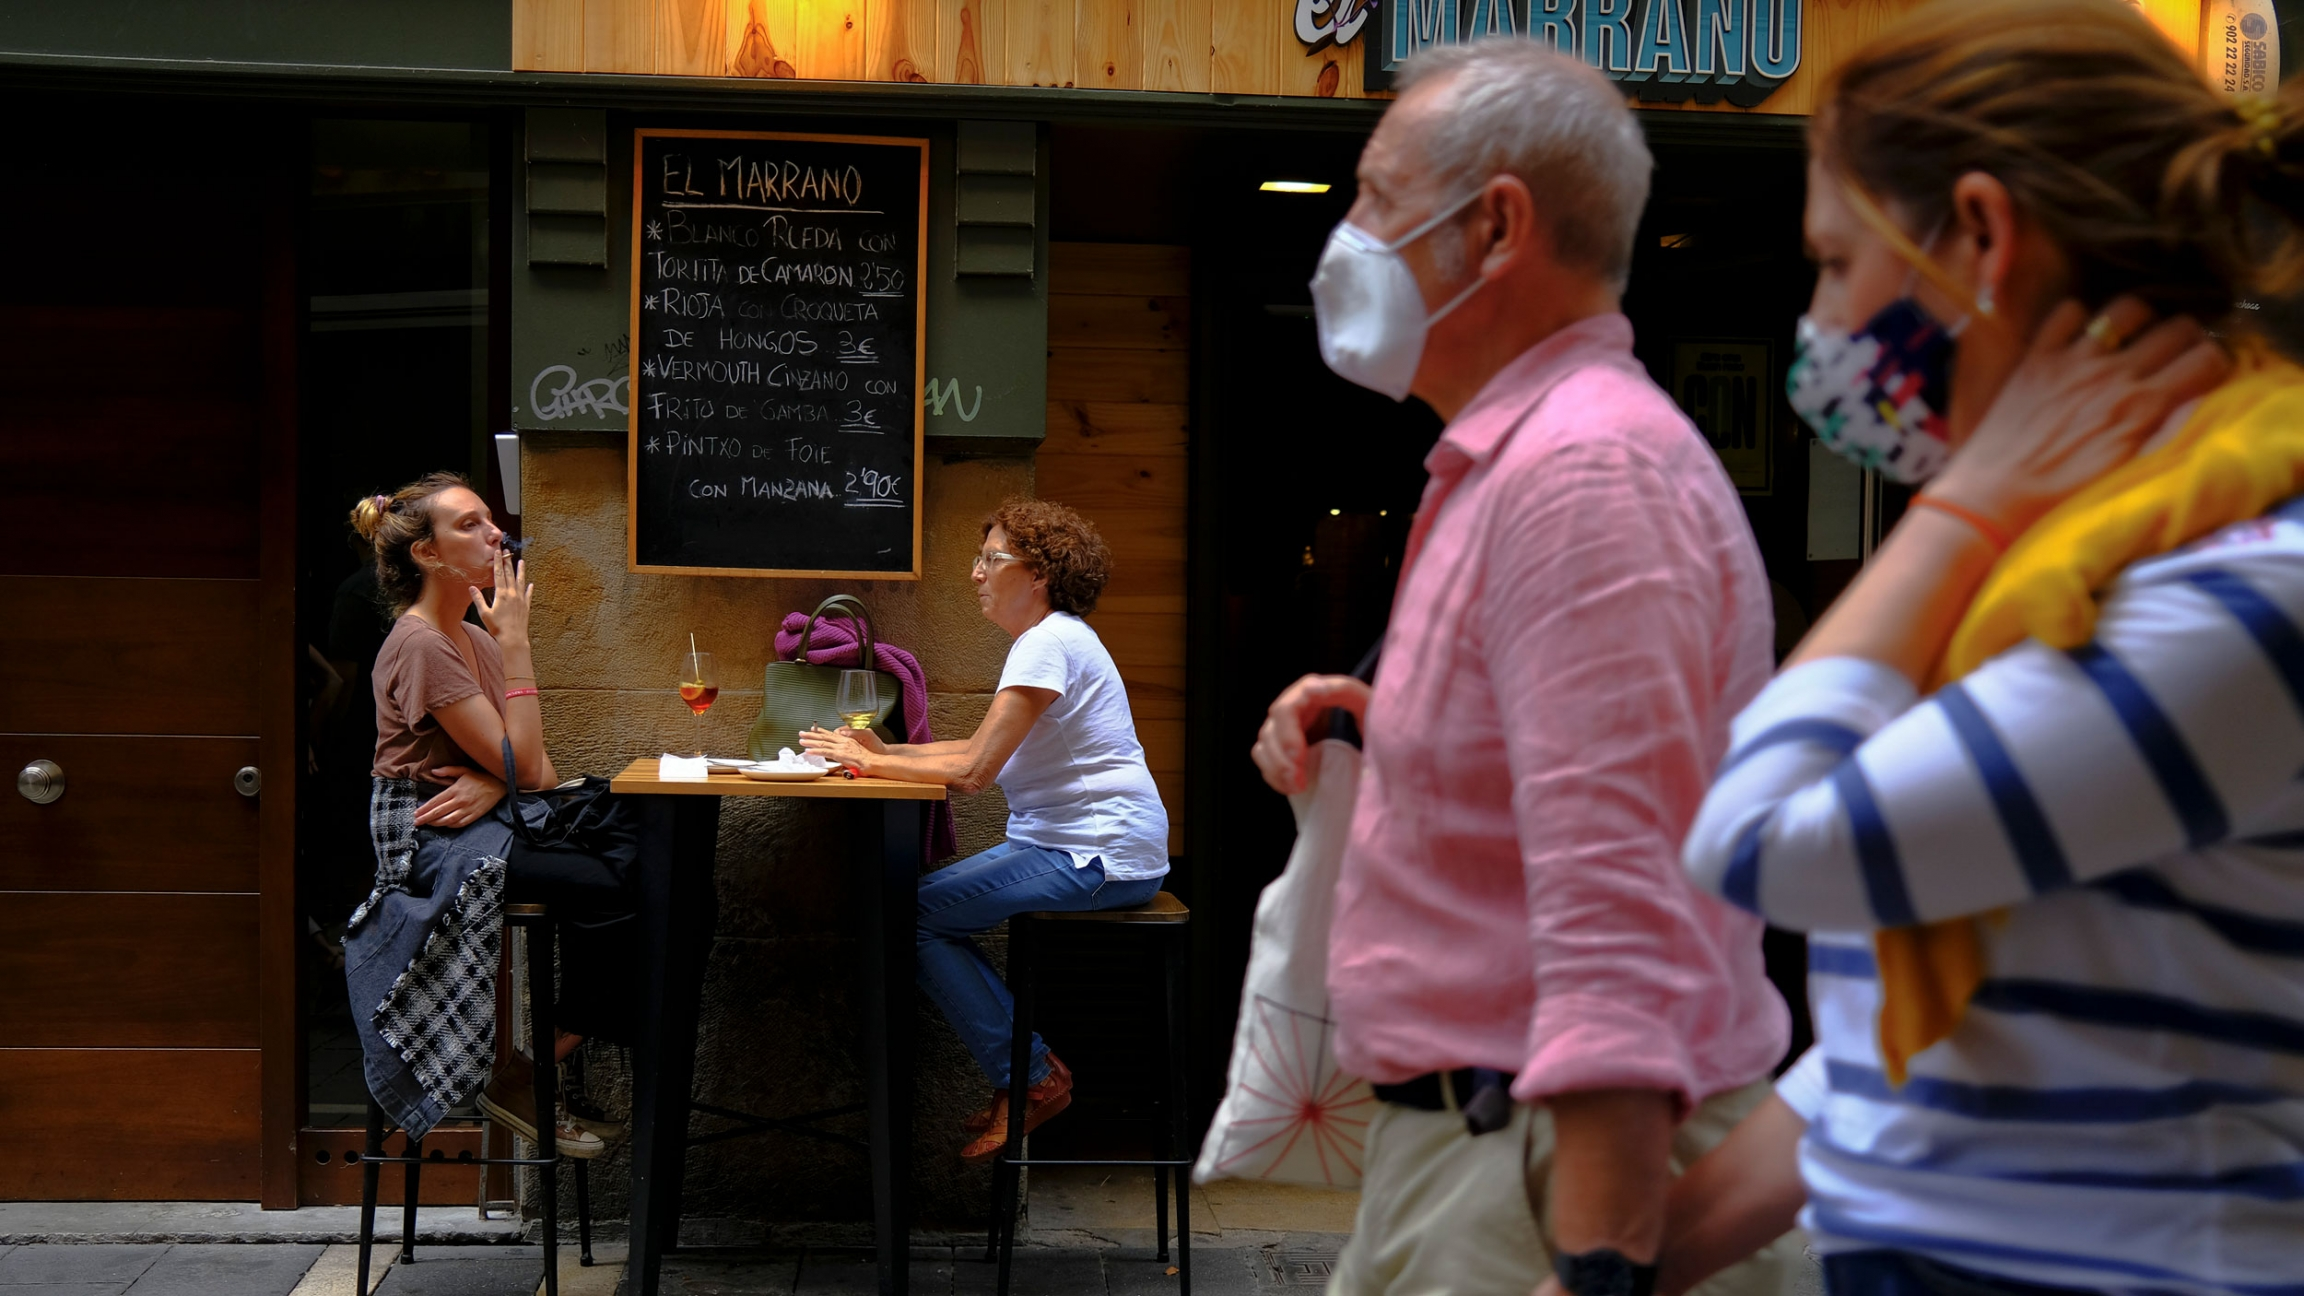 A couple is shown in soft focus walking and wearing face masks with two women shown in the distance sitting at a cafe table and one woman is smoking a cigarette.